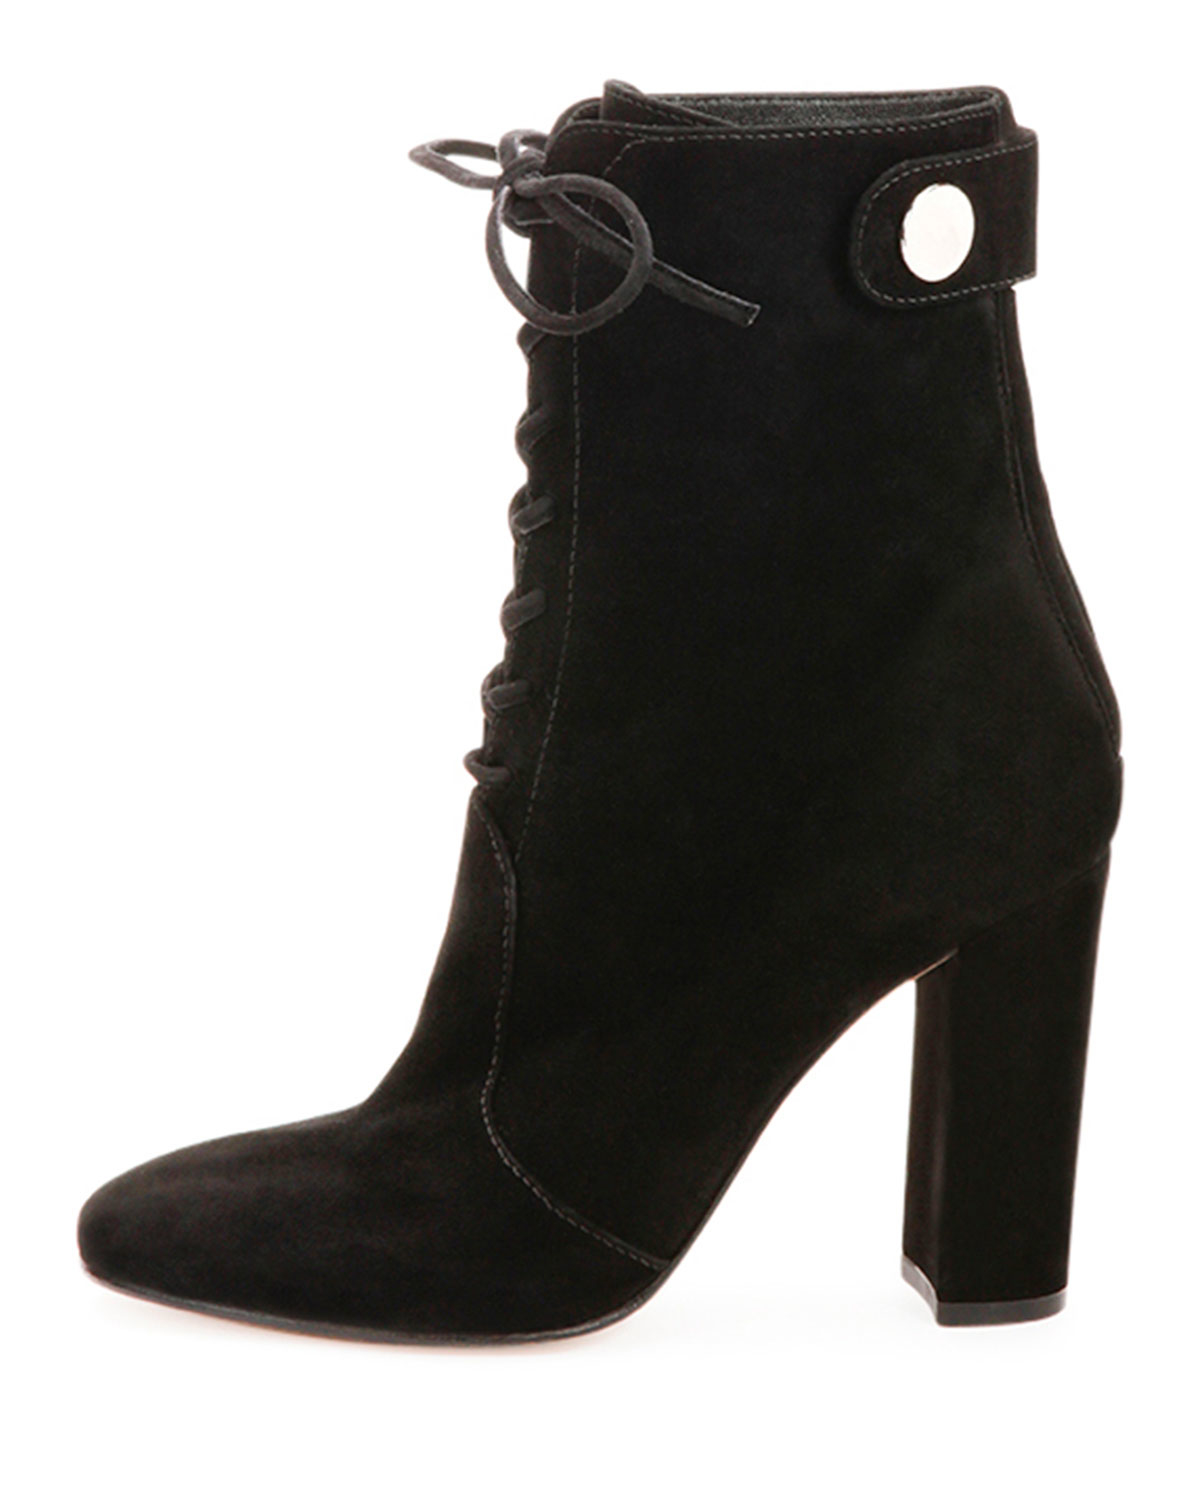 lace-up ankle boots - Black Sergio Rossi hXw7jGS